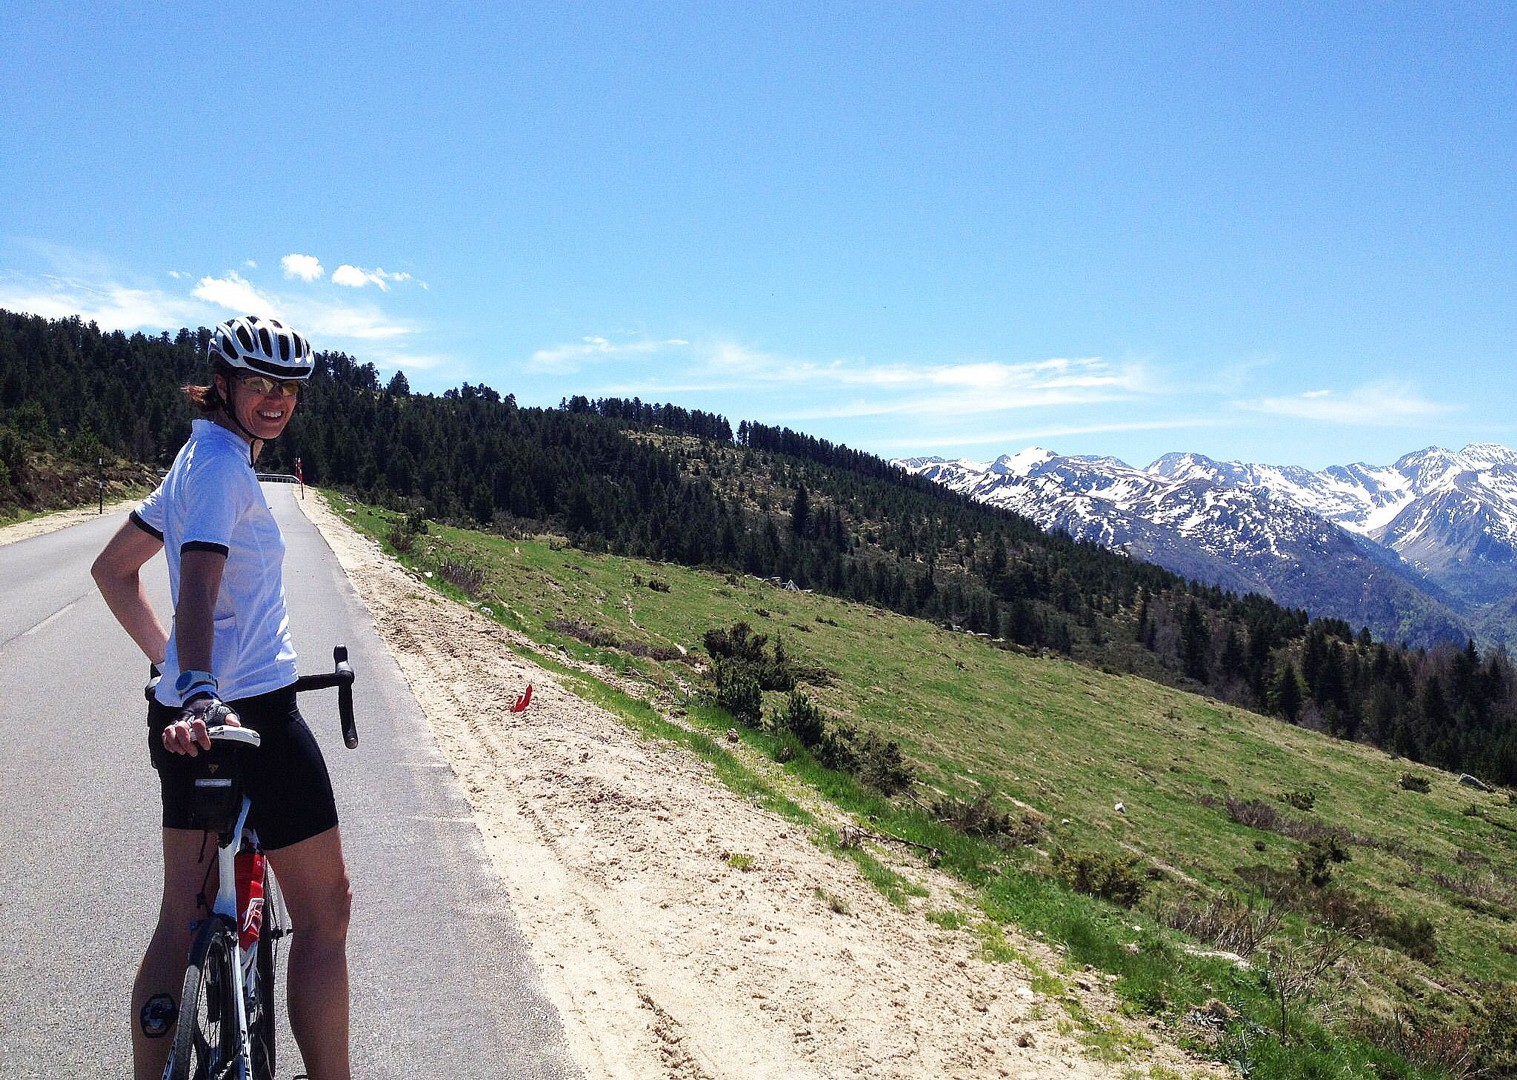 france-pyrenees-fitness-week-guided-cycling.jpg - France - Pyrenees Fitness Week (Grade 2-3) - Guided Road Cycling Holiday - Road Cycling